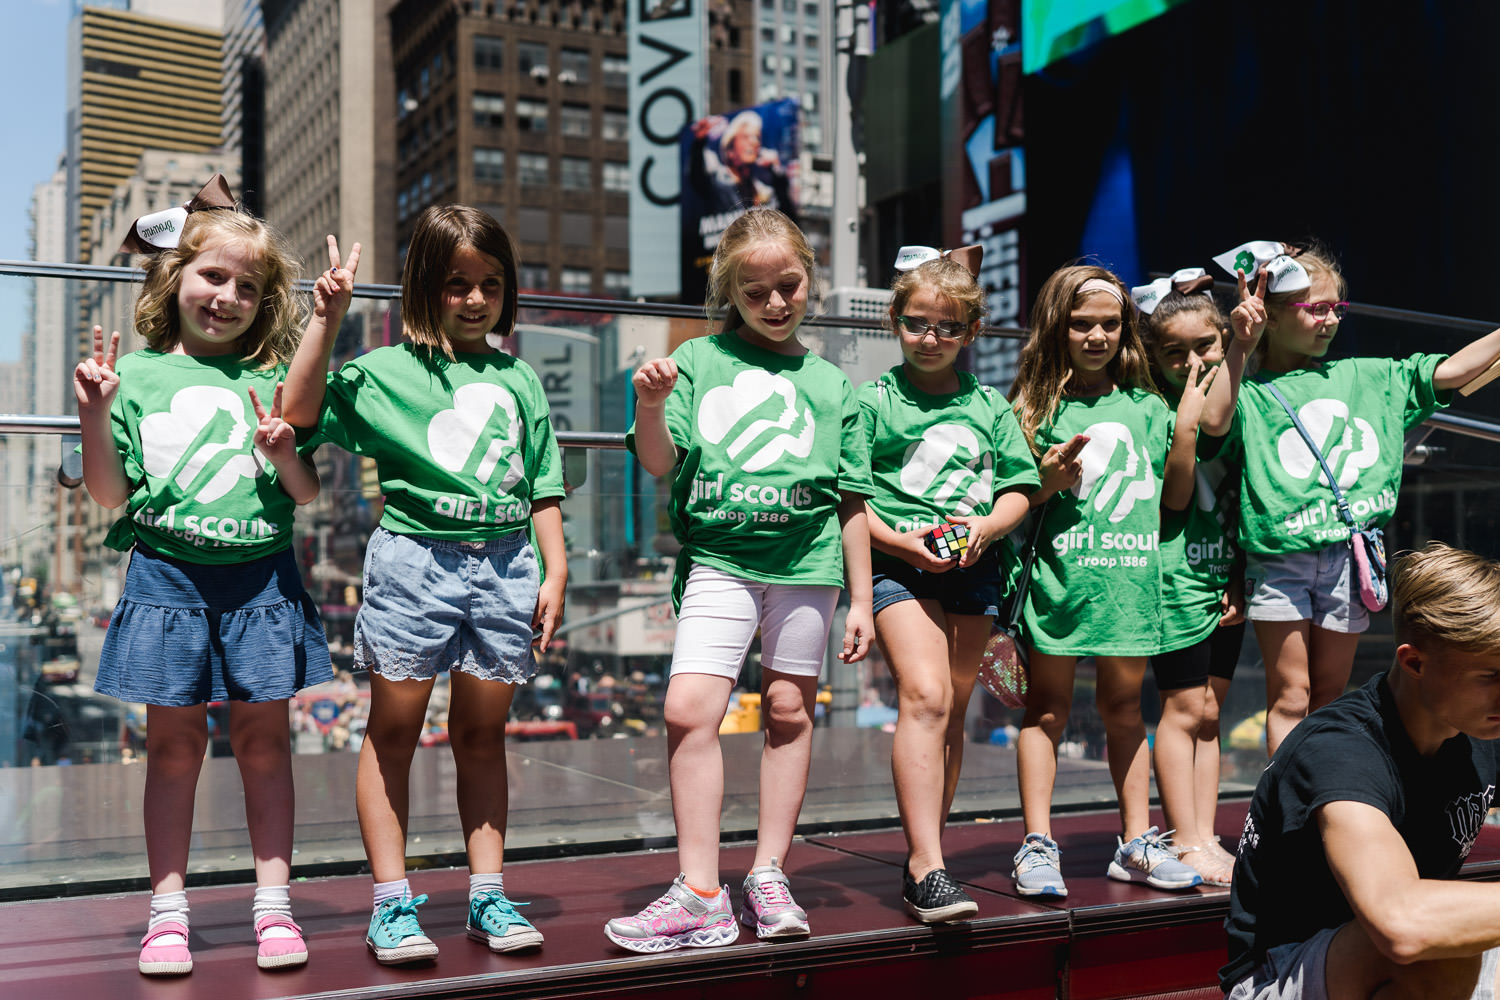 Girl Scouts pose together in Times Square.